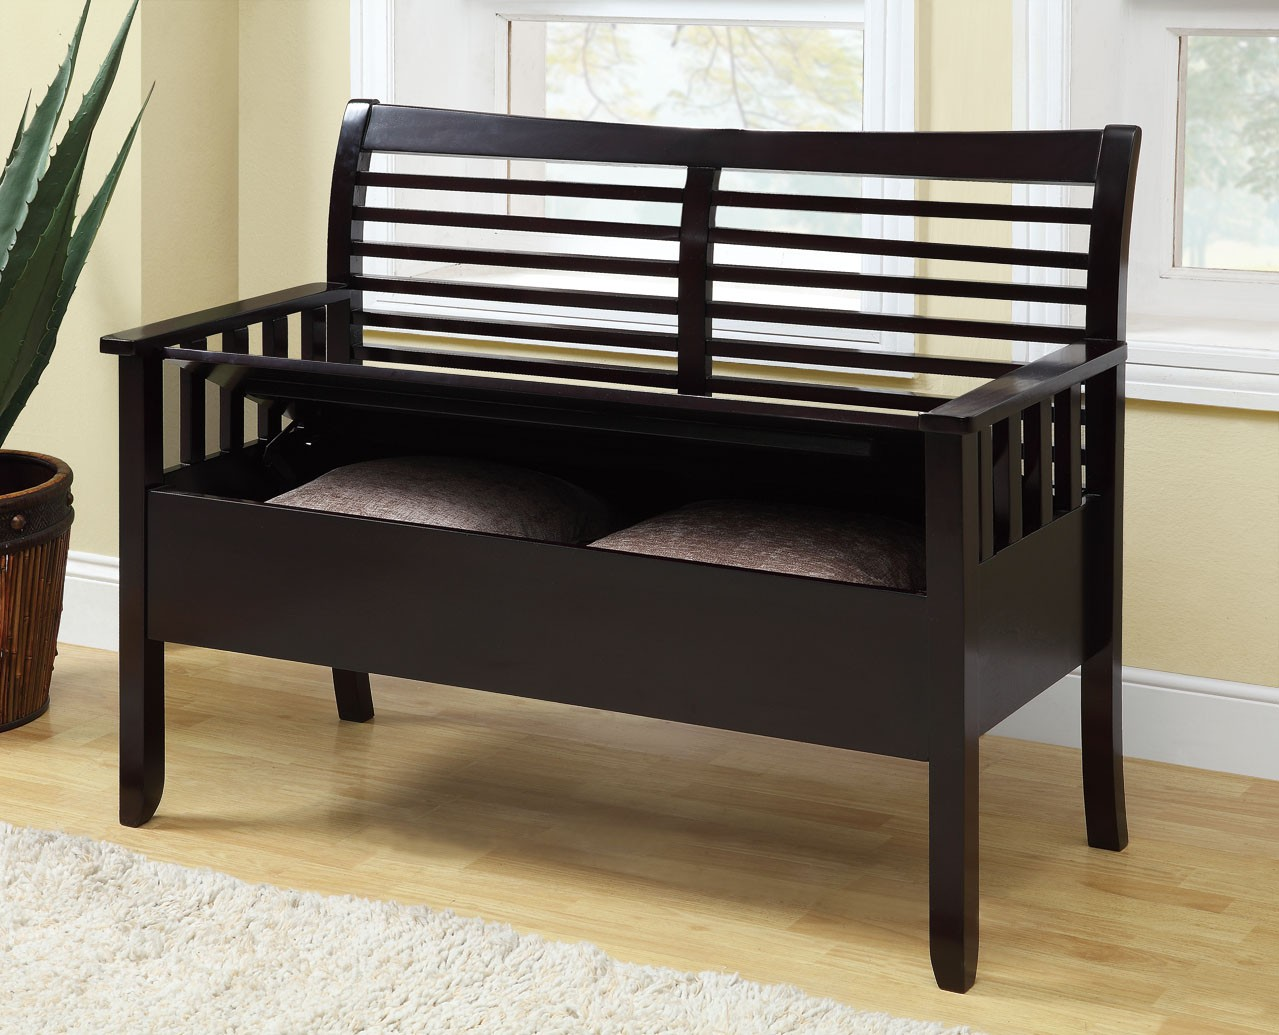 4507 Cappuccino Solid Wood Storage Bench I 4507 Monarch